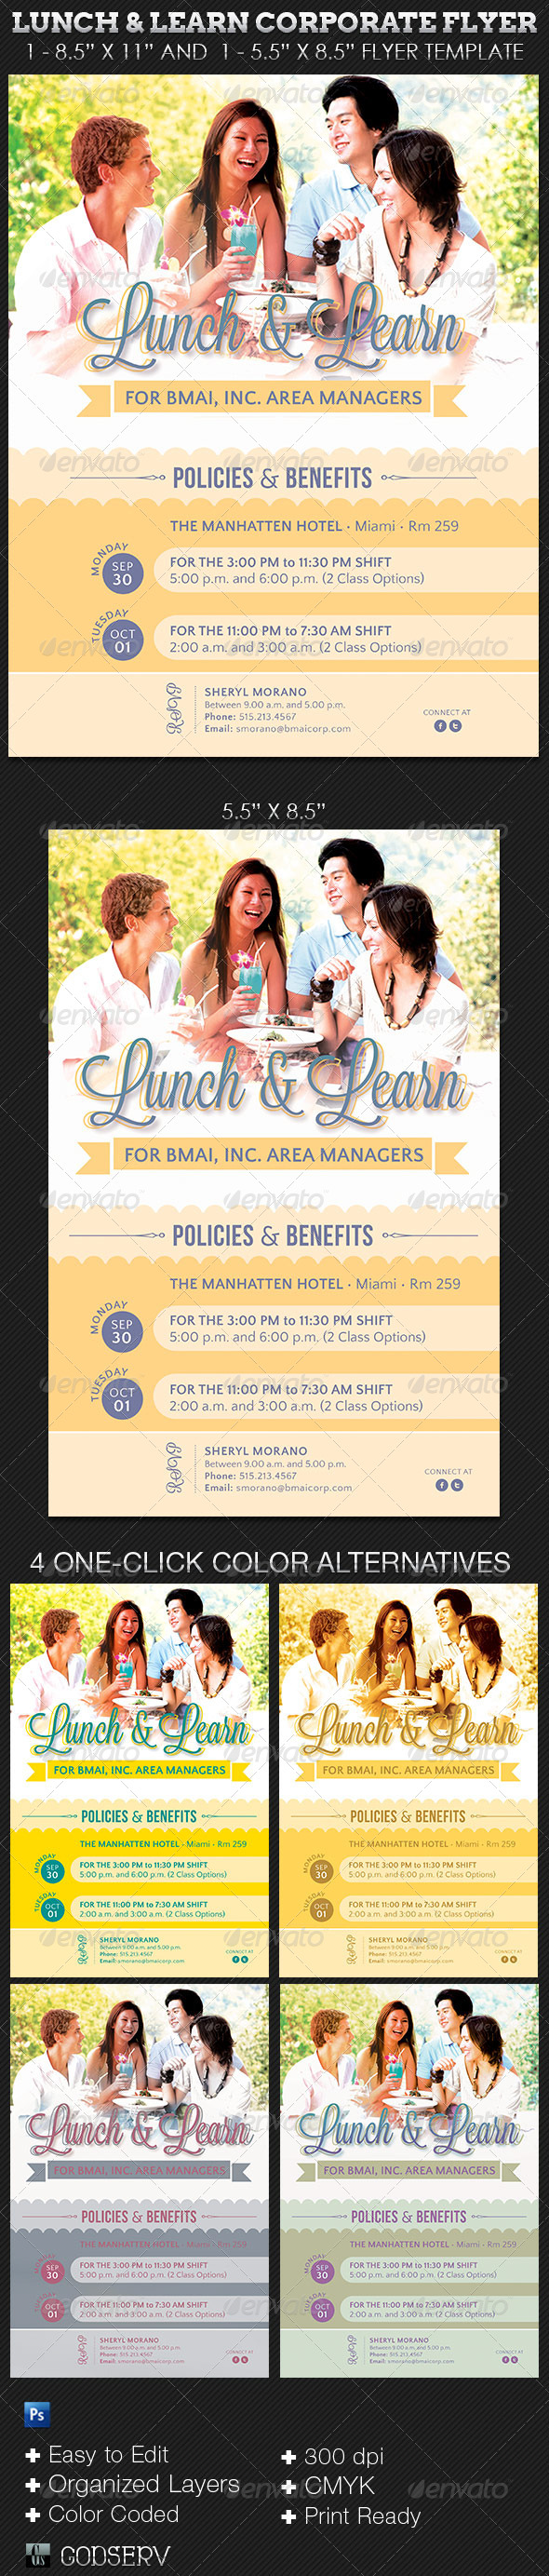 Lunch Learn Corporate Flyer Template - Corporate Flyers